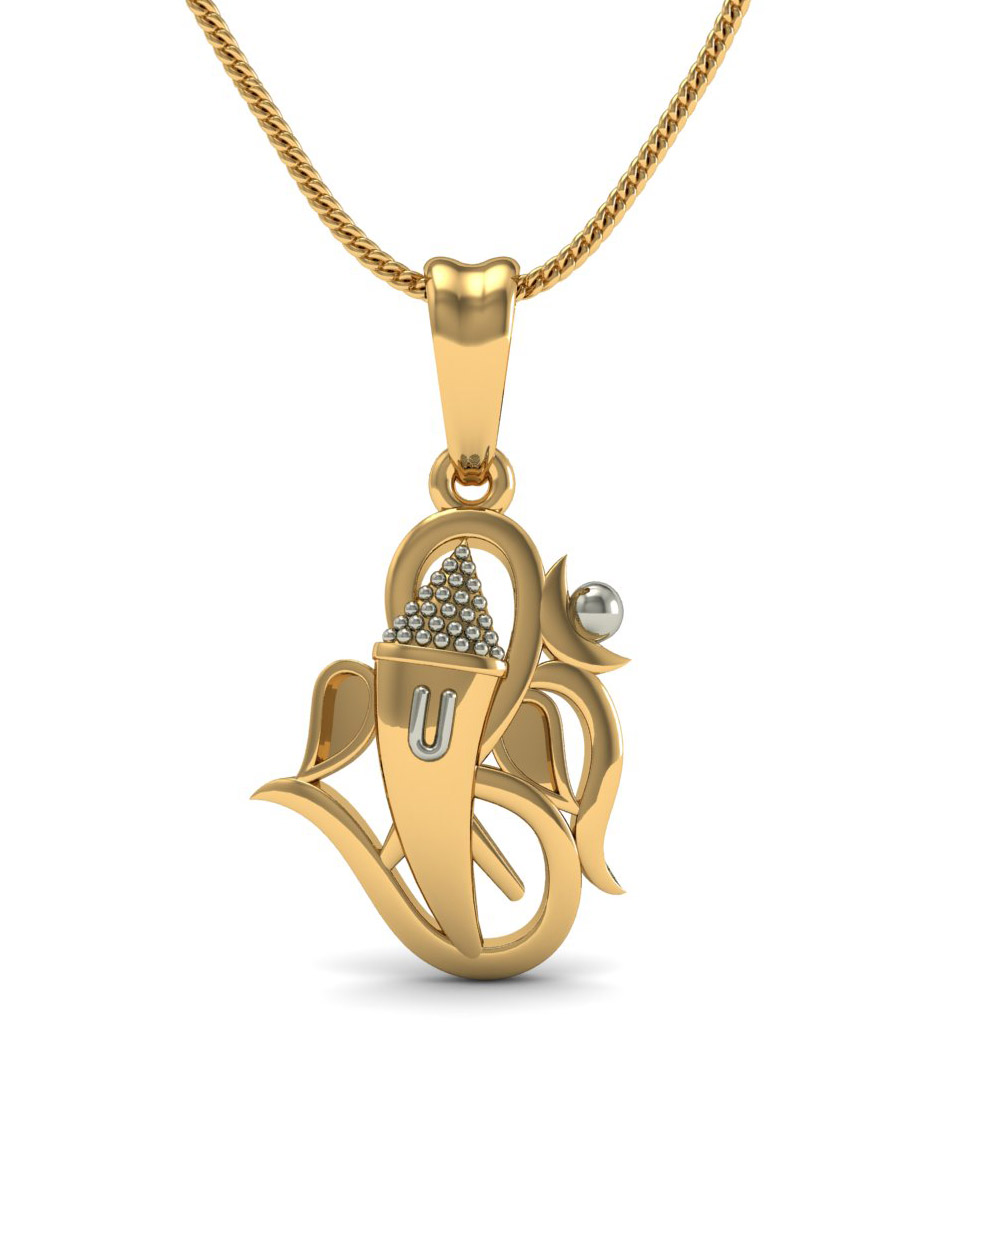 Buy 14k gold lord ganesha pendant without chain online india voylla 14k gold lord ganesha pendant without chain aloadofball Gallery